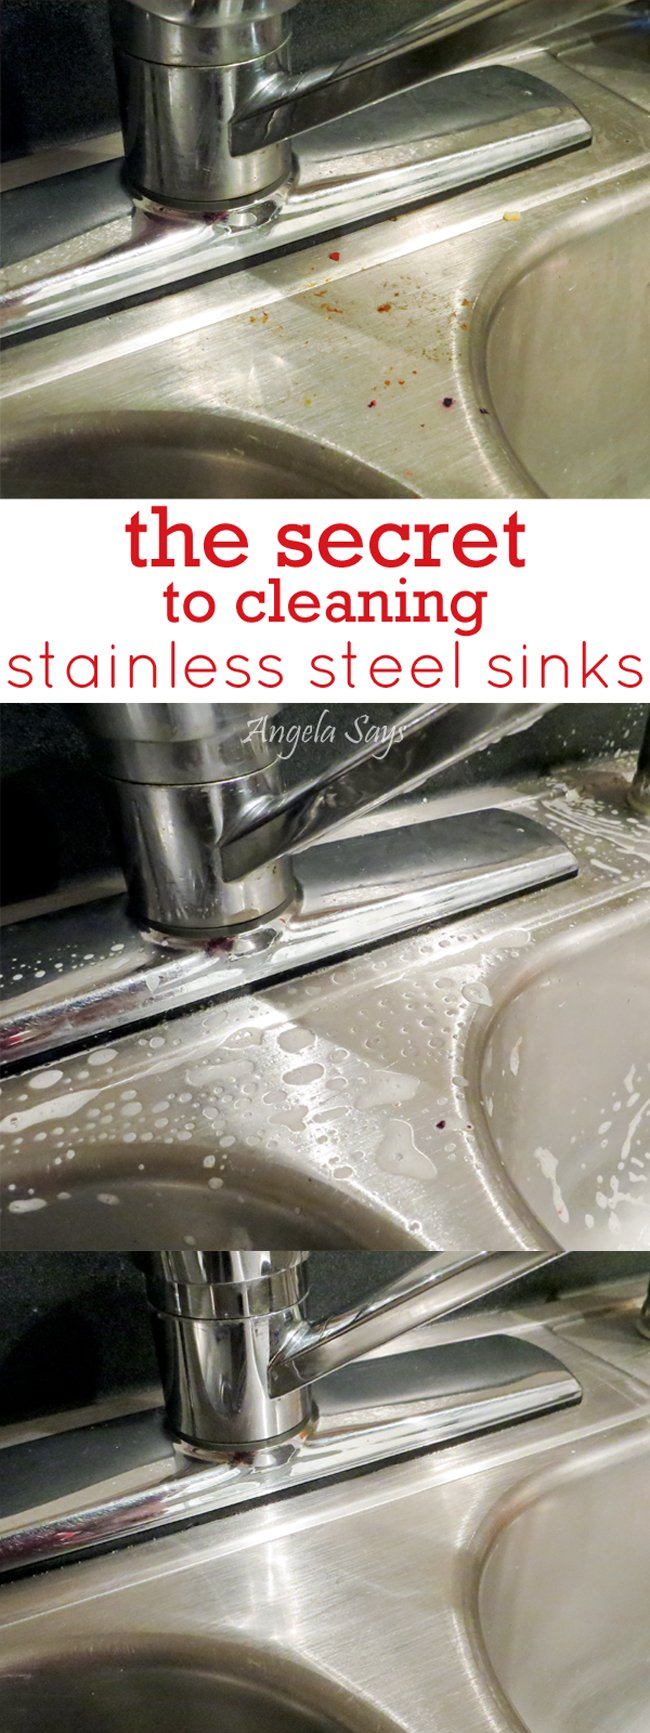 17 super useful tips to cleaning your home in half the time world inside pictures - Best kitchen sink faucets helping you wash some appliances in ease ...